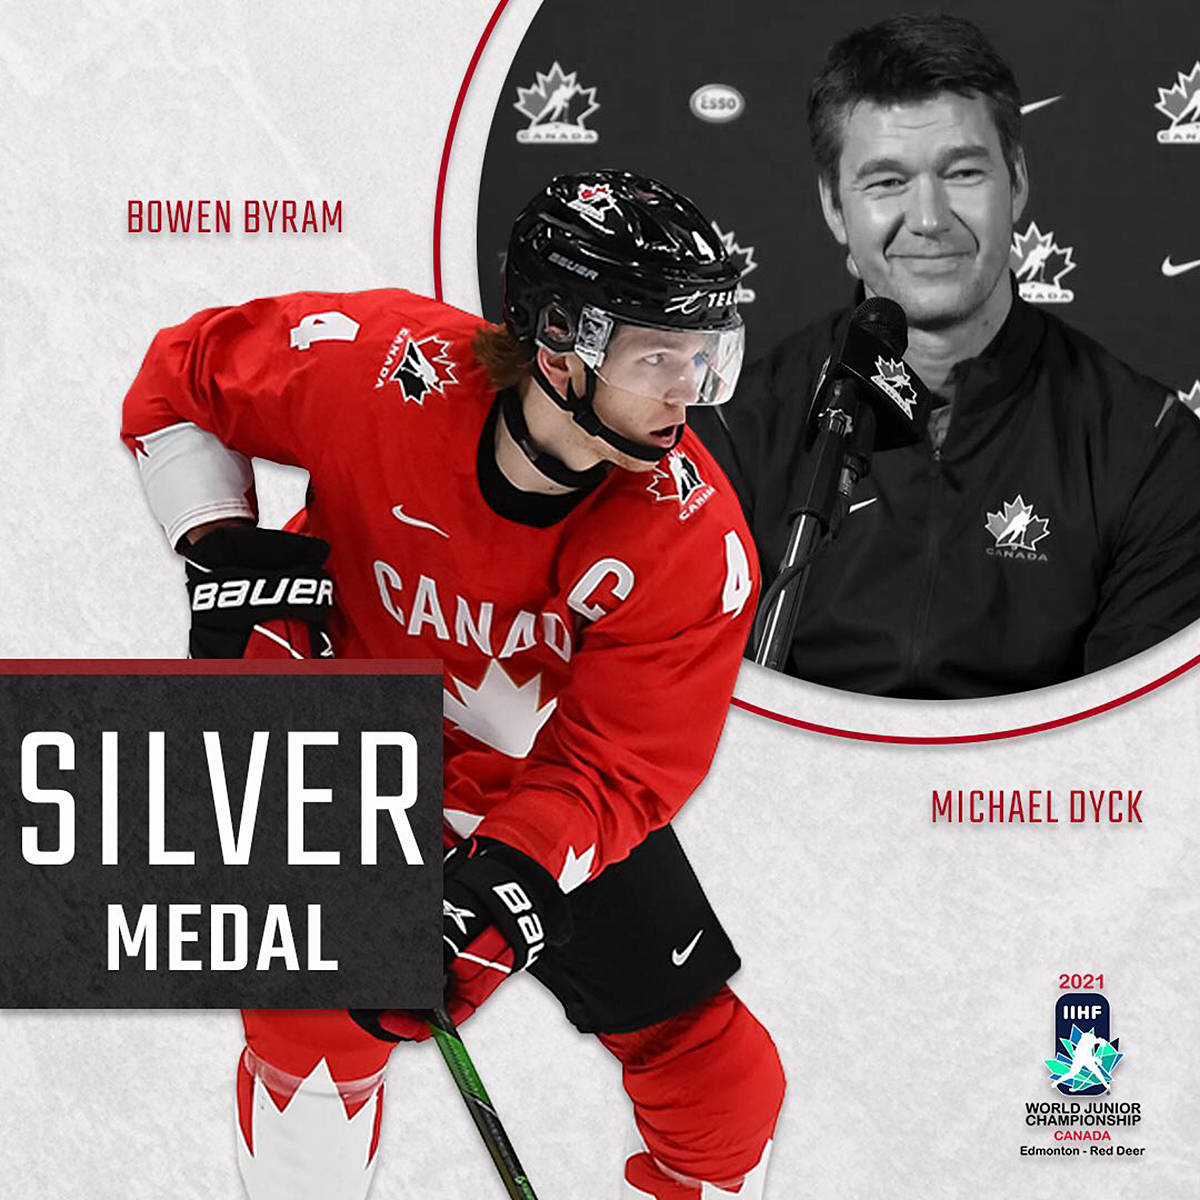 Giants defenceman Bowen Byram and head coach Michael Dyck earned silver medals for team Canada at the 2021 IIHF world juniors championship in Edmonton (Courtesy Vancouver Giants)